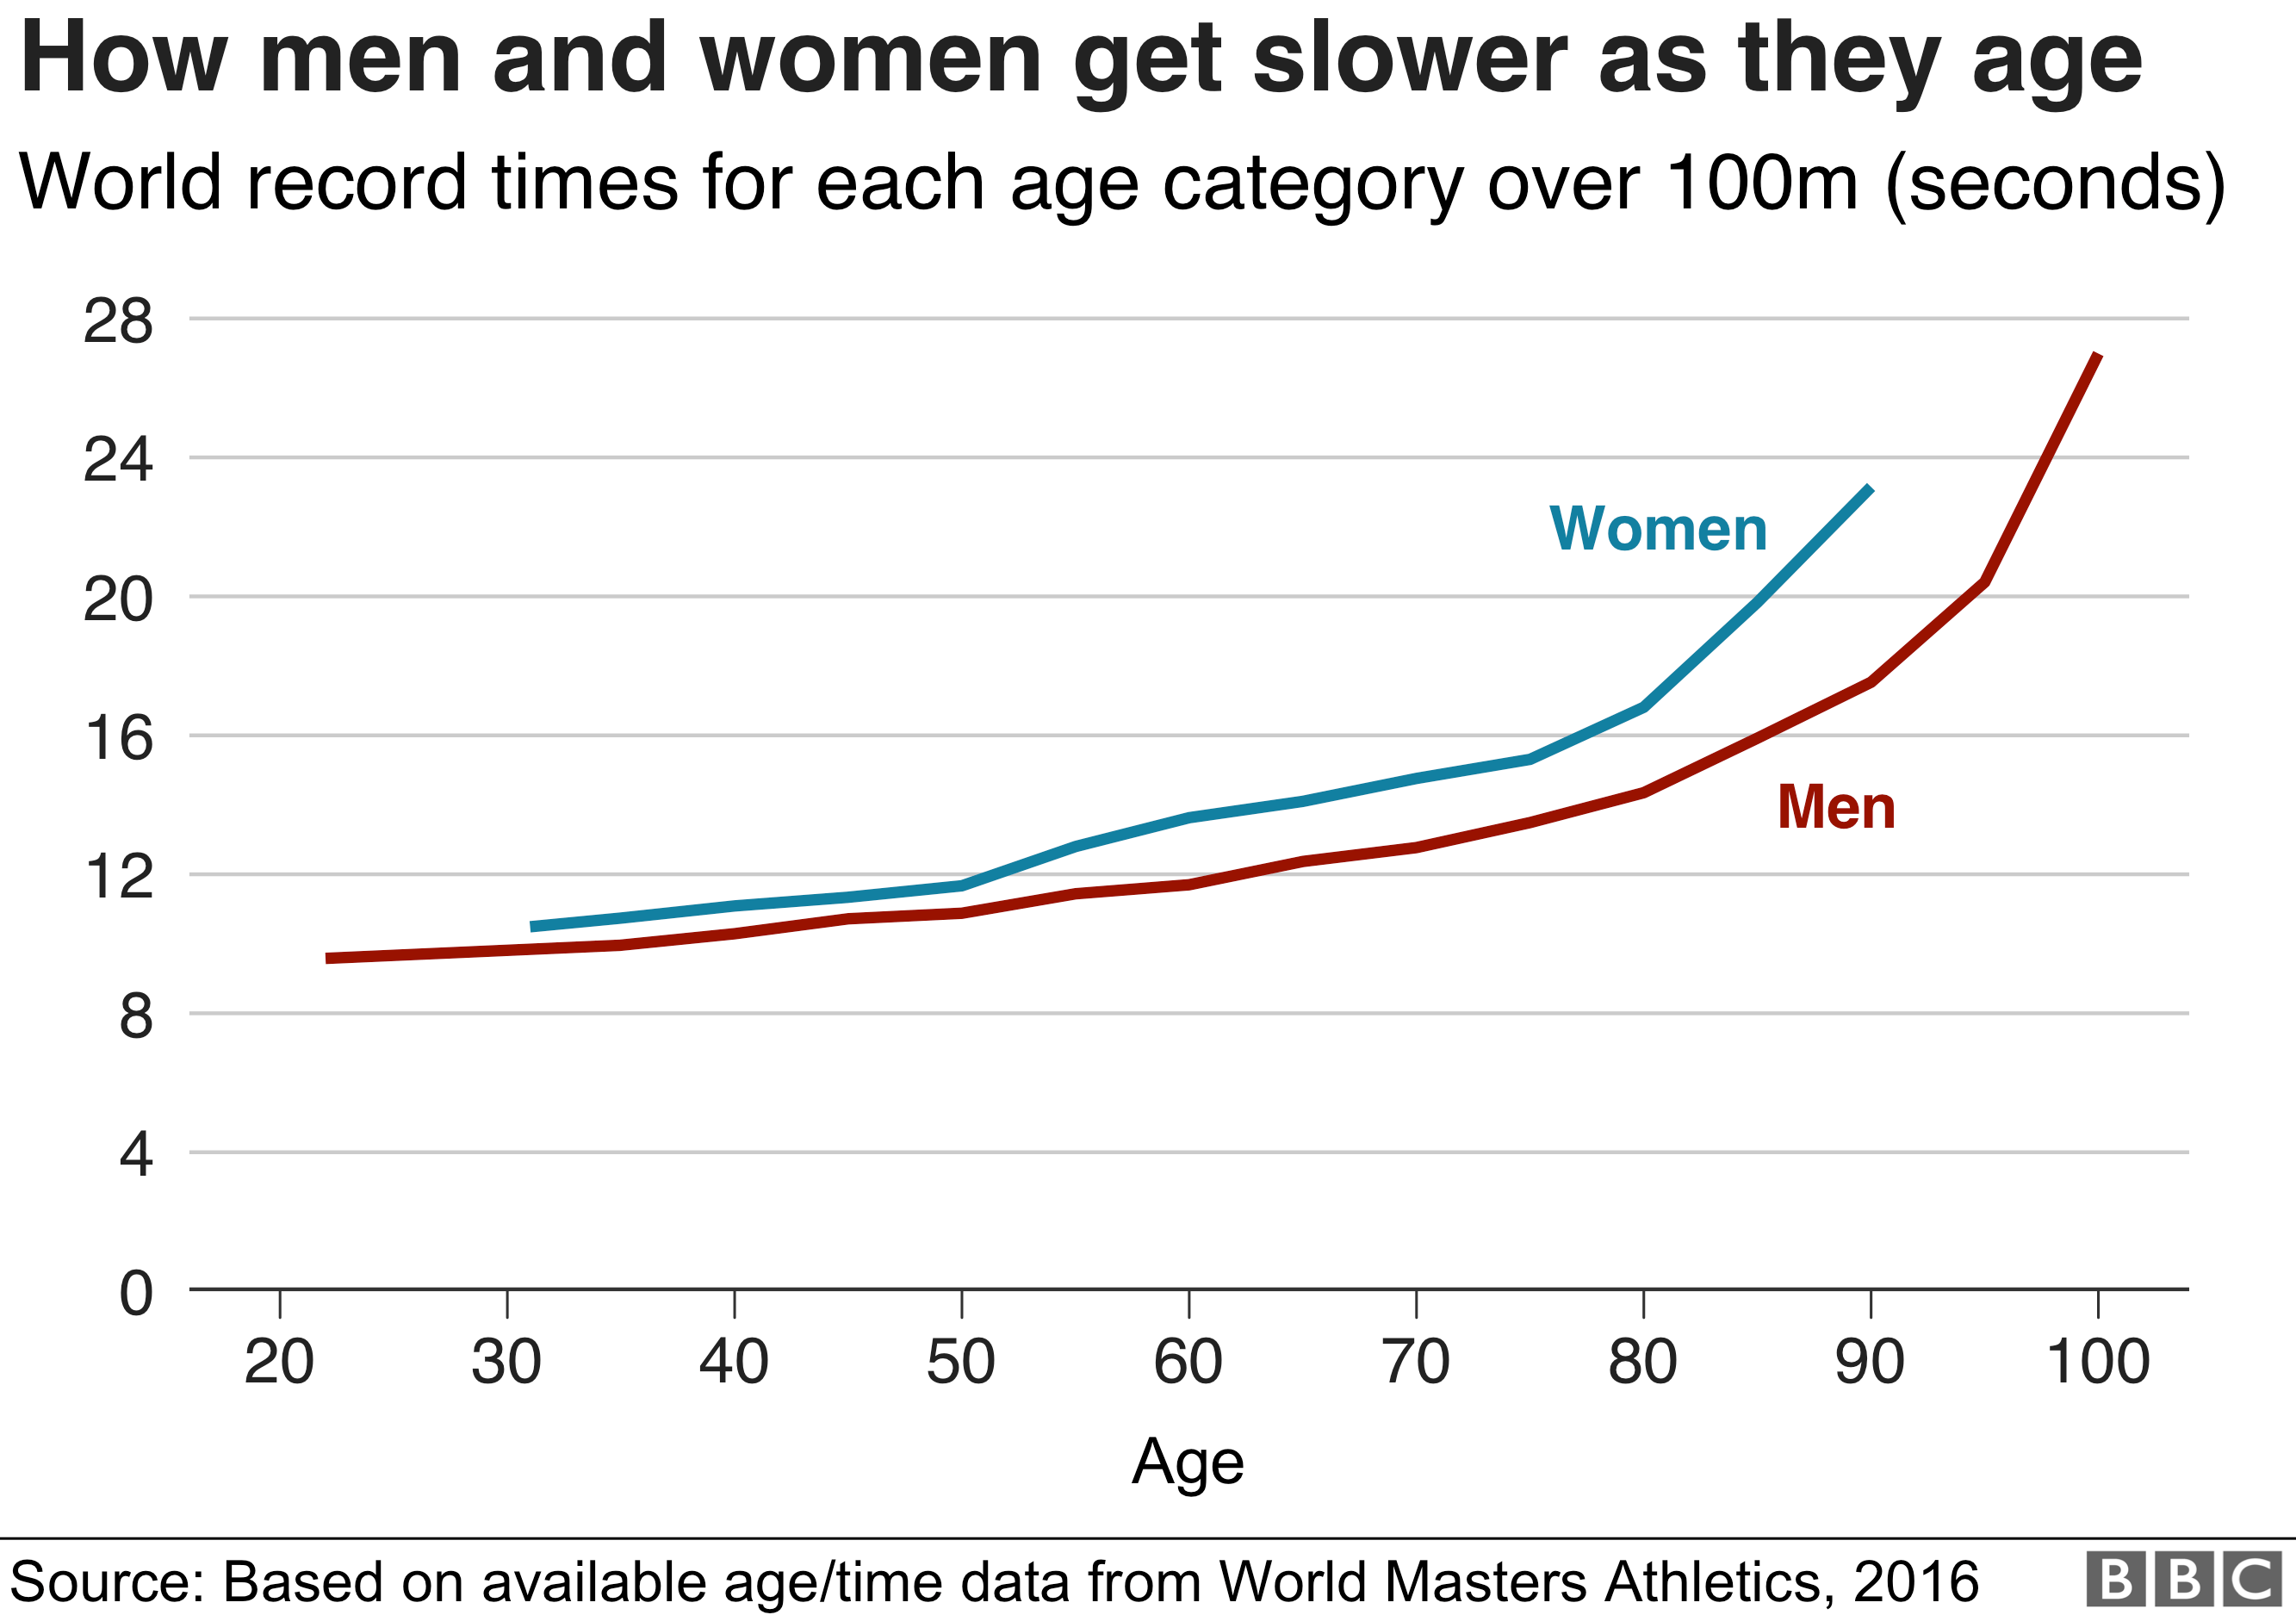 Chart showing how men and women get slower as they age